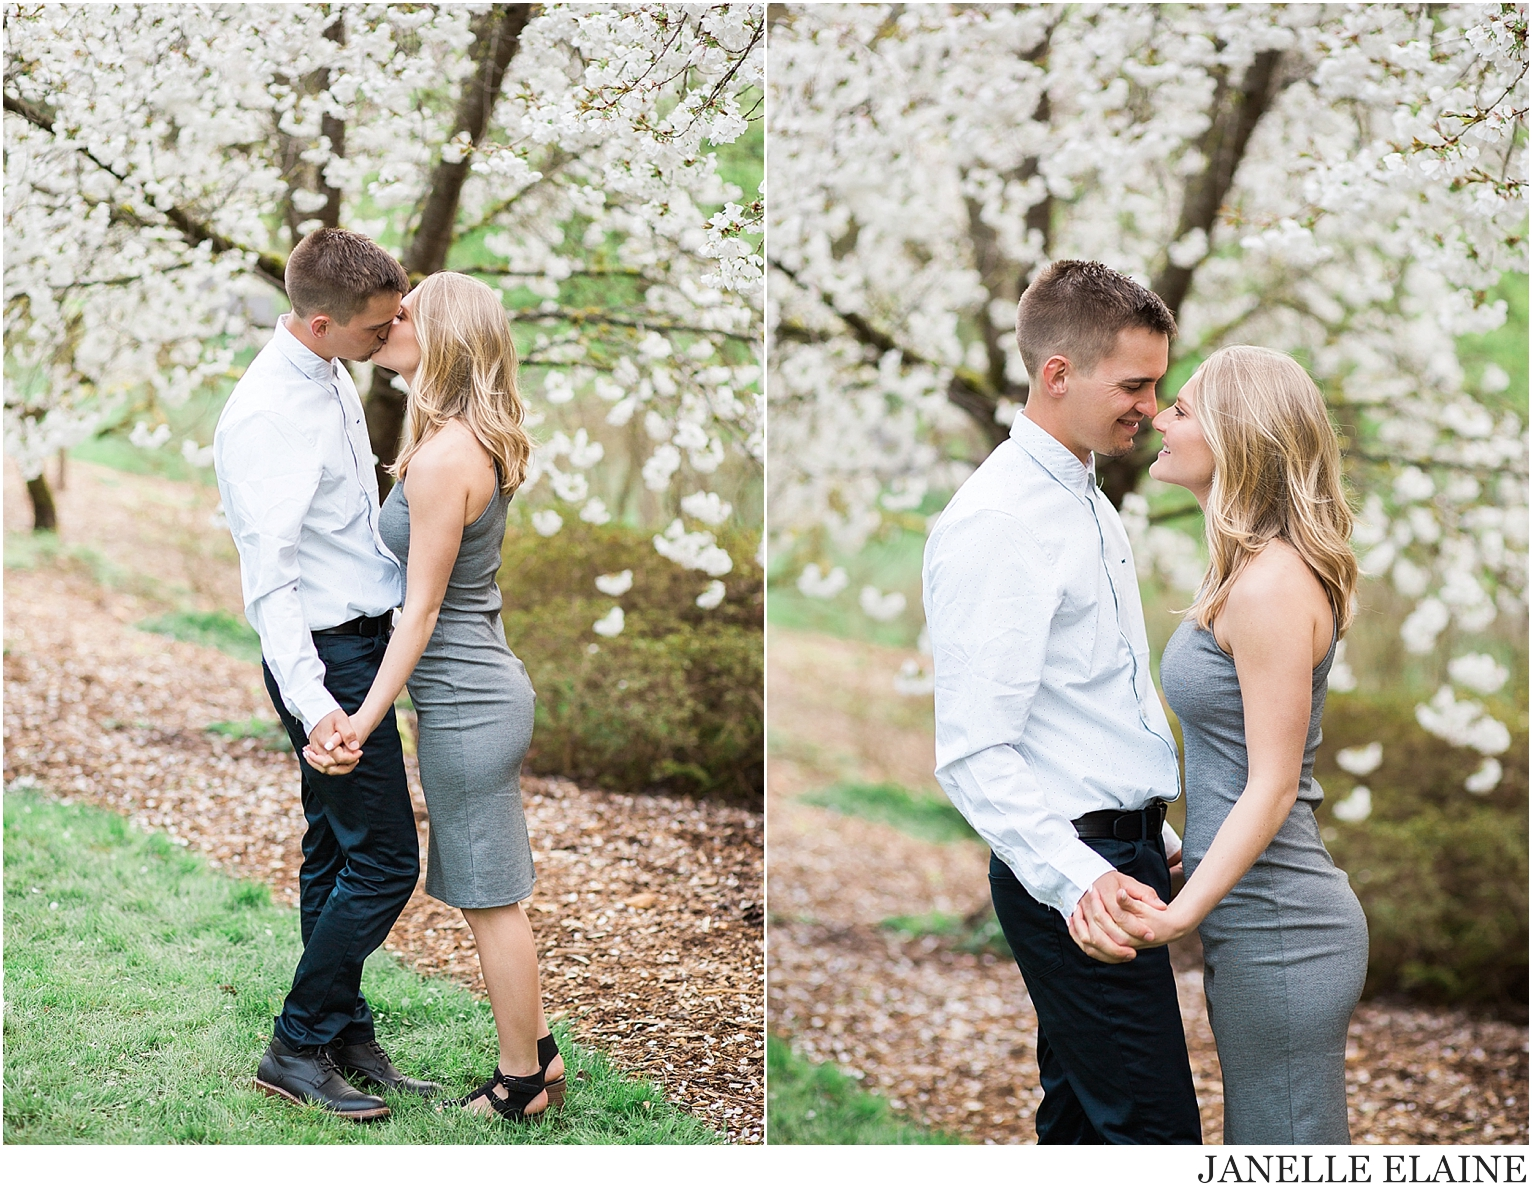 tricia and nate engagement photos-janelle elaine photography-105.jpg